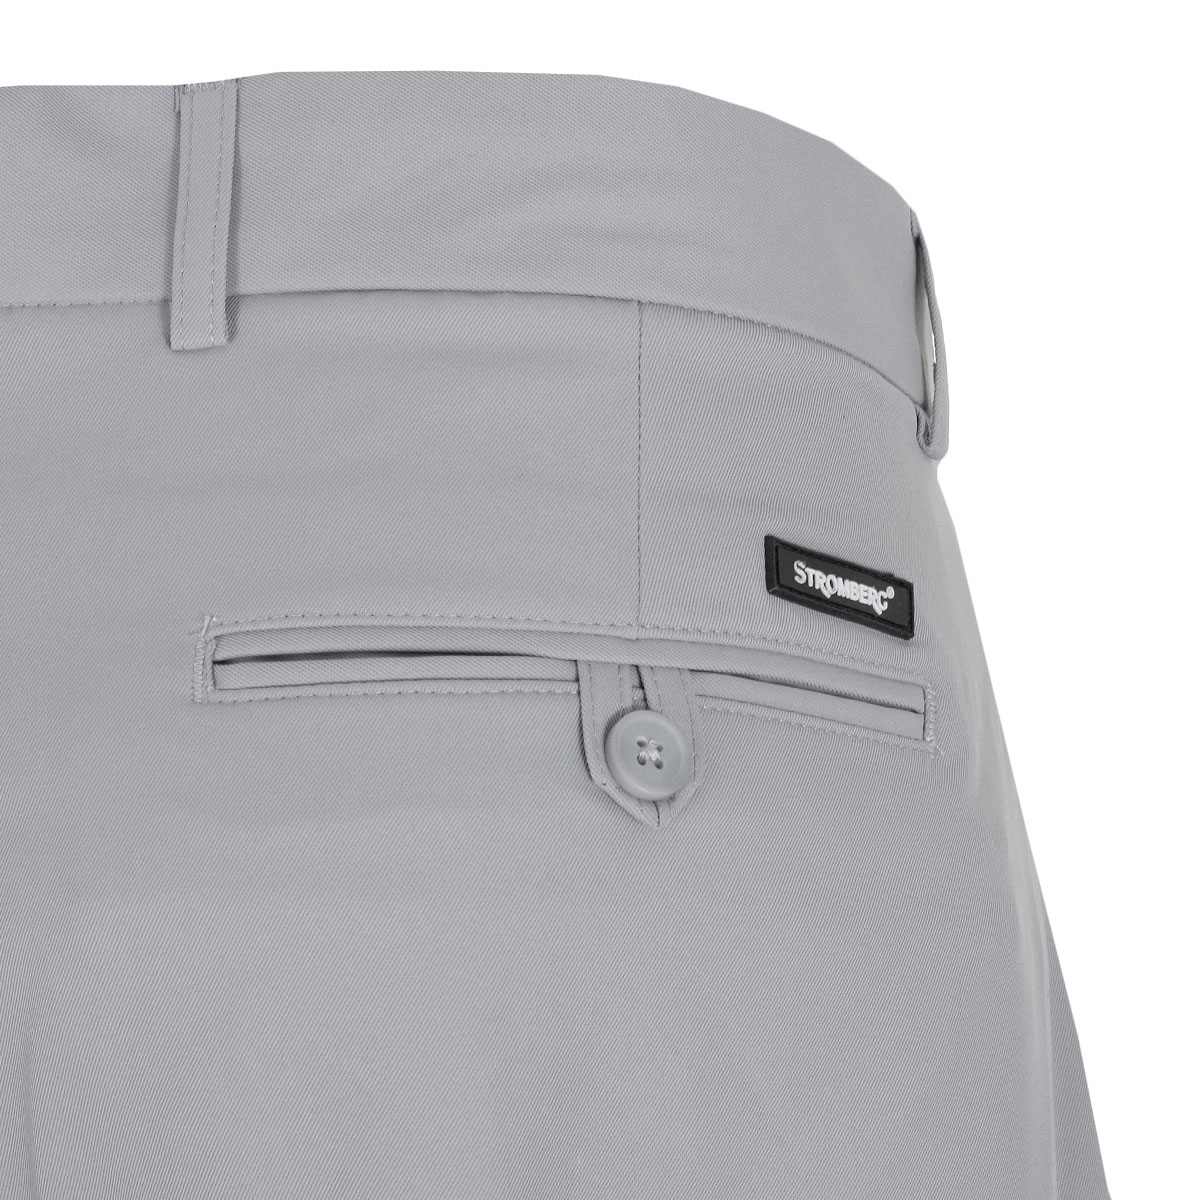 Stromberg-Mens-Plain-Front-Lightweight-Breathable-Golf-Shorts-48-OFF-RRP thumbnail 10